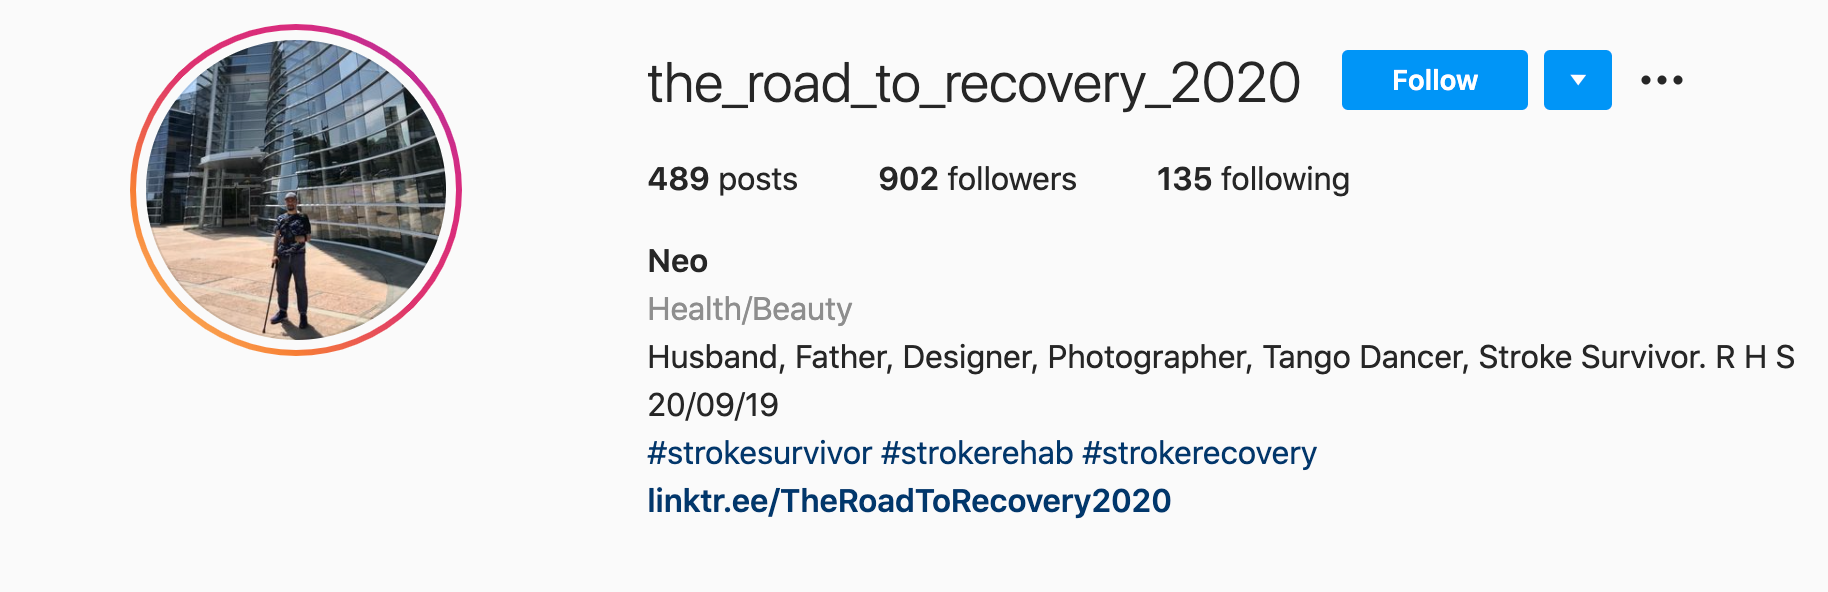 On the Road to Recovery Instagram